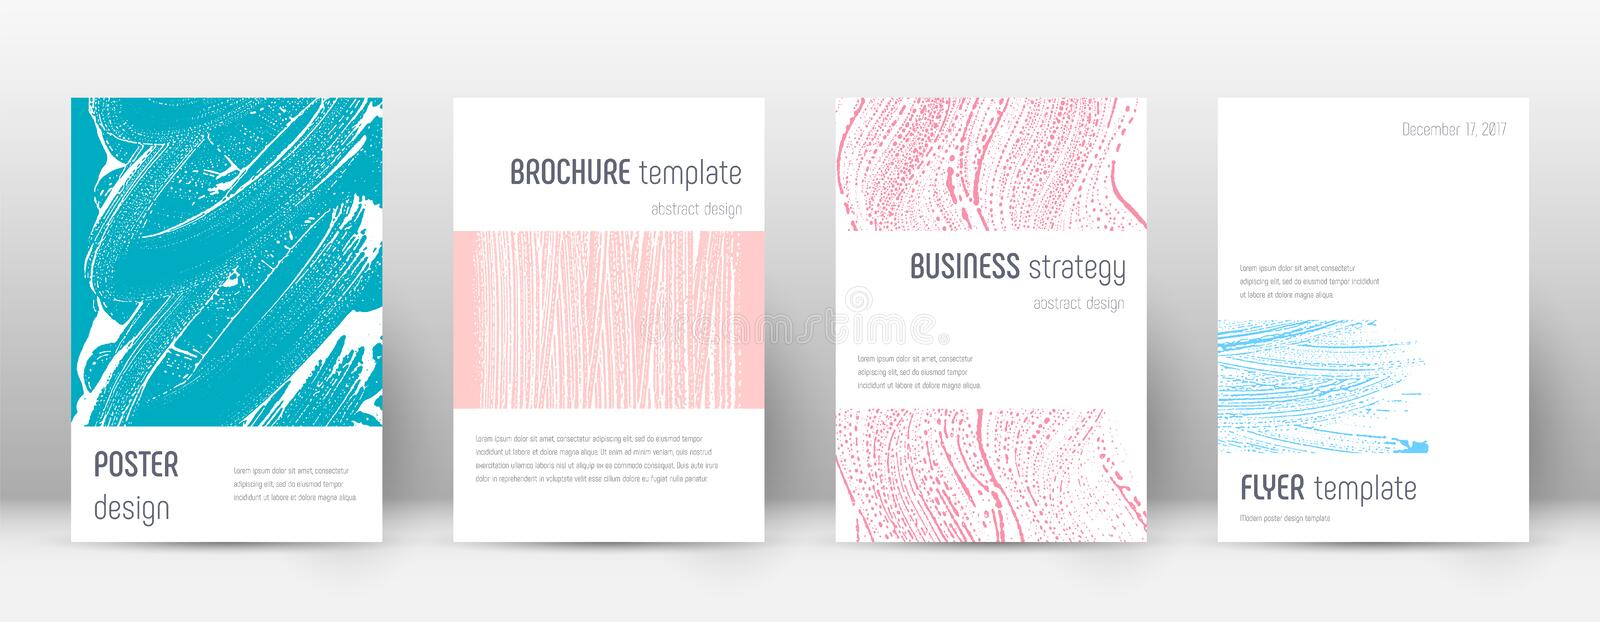 Cover page design template. Minimalistic brochure. Layout. Classy trendy abstract cover page. Pink and blue grunge texture background. Captivating poster vector illustration